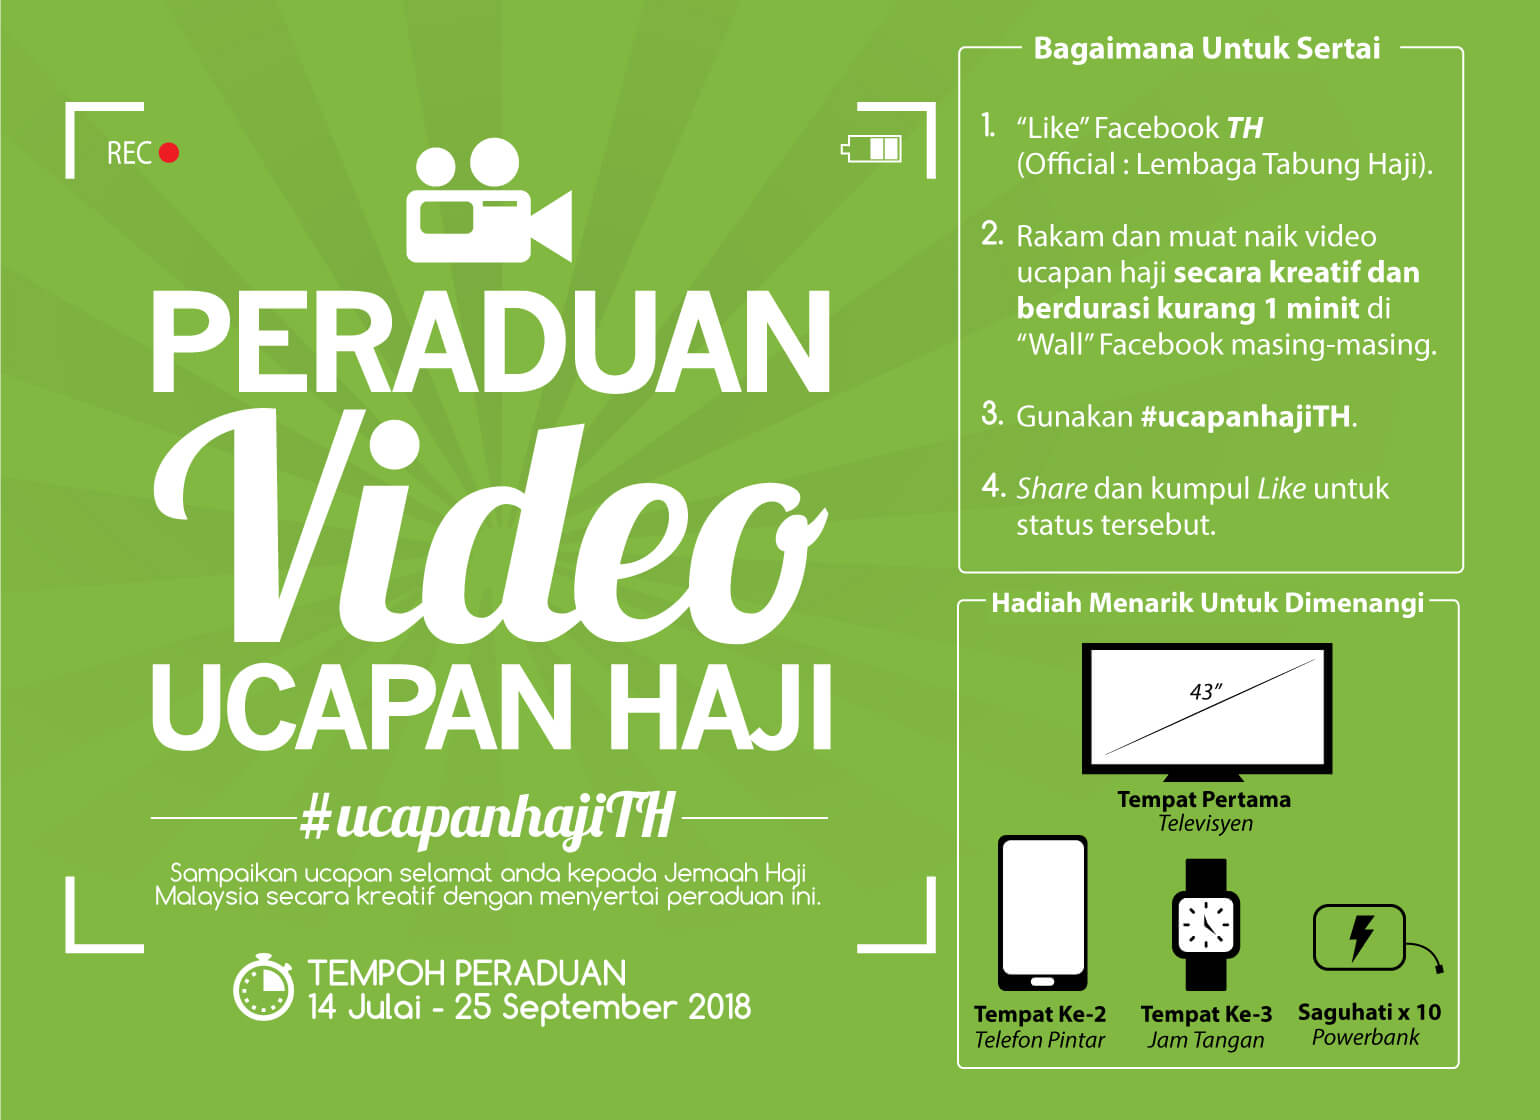 Pertandingan Video Ucapan Haji